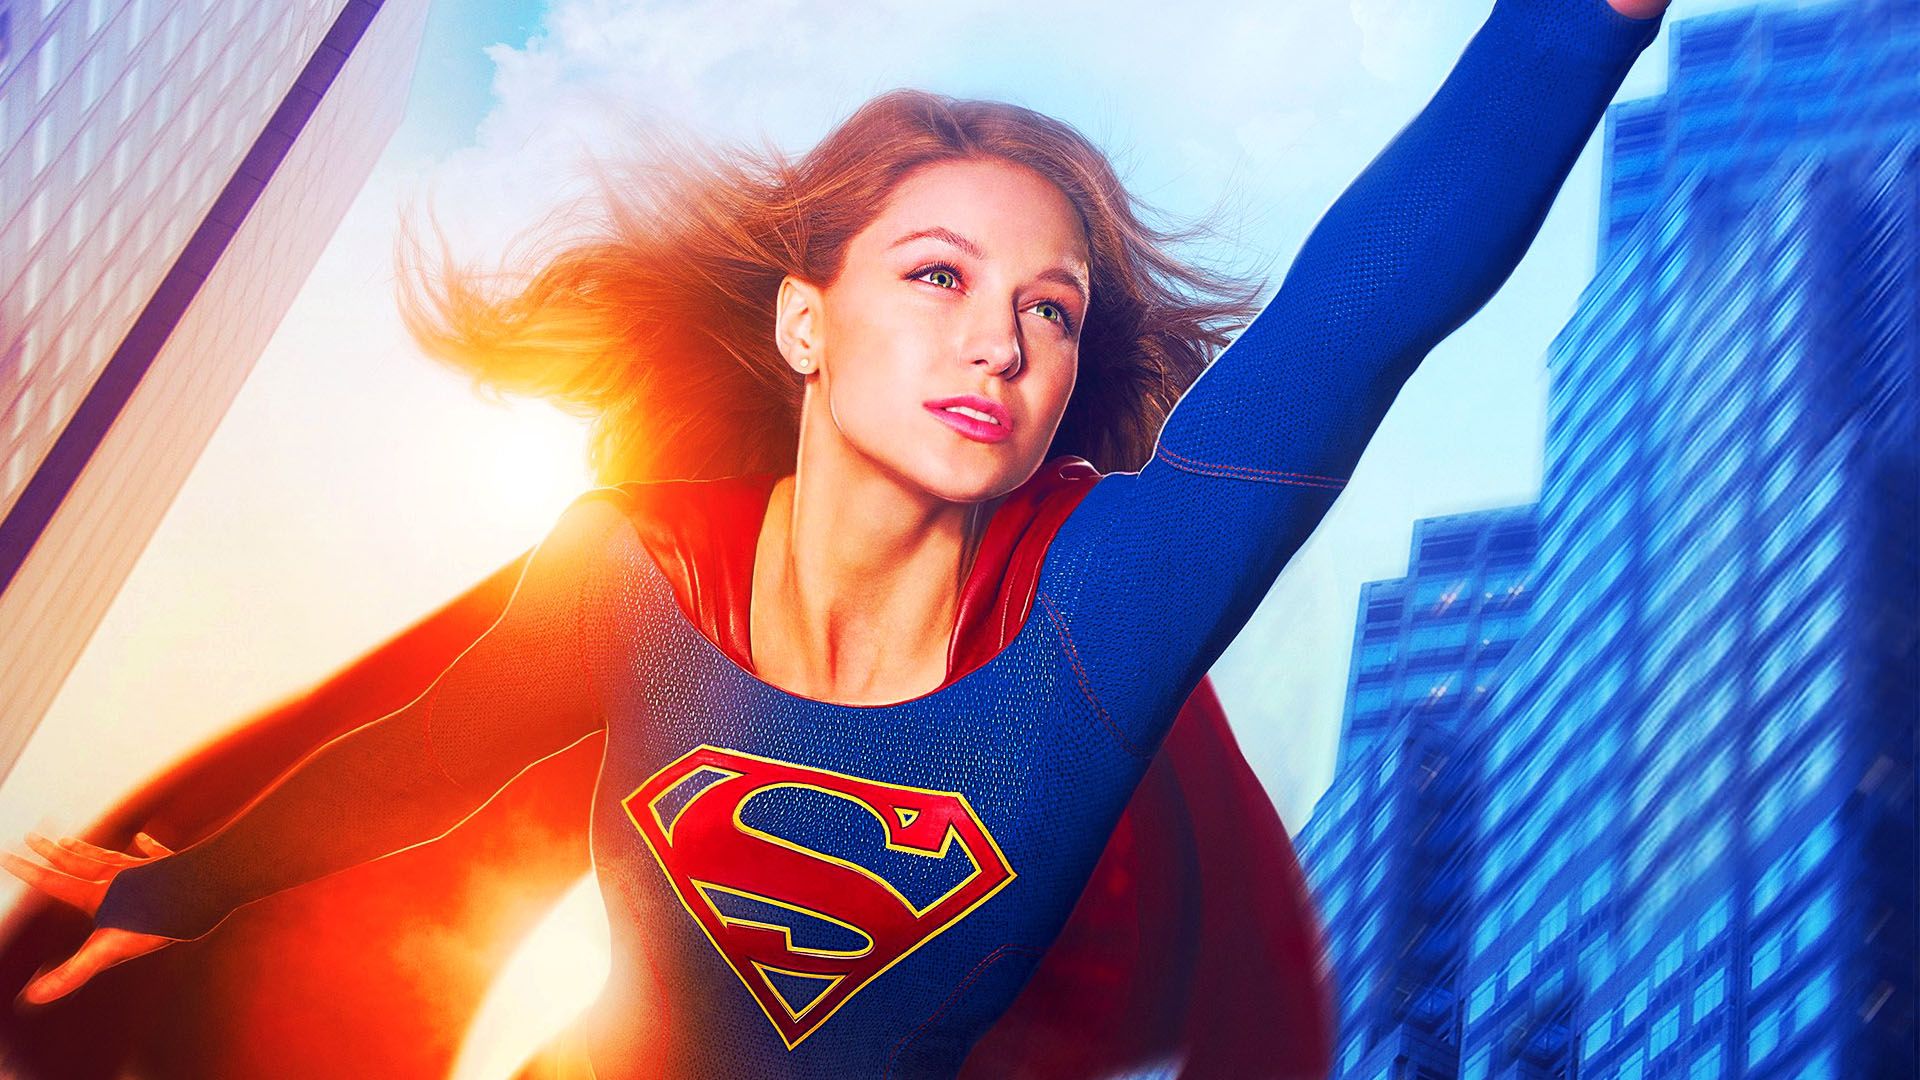 Girls Wallpapers 2015: Supergirl (2015 TV Series) Wallpaper (38724498